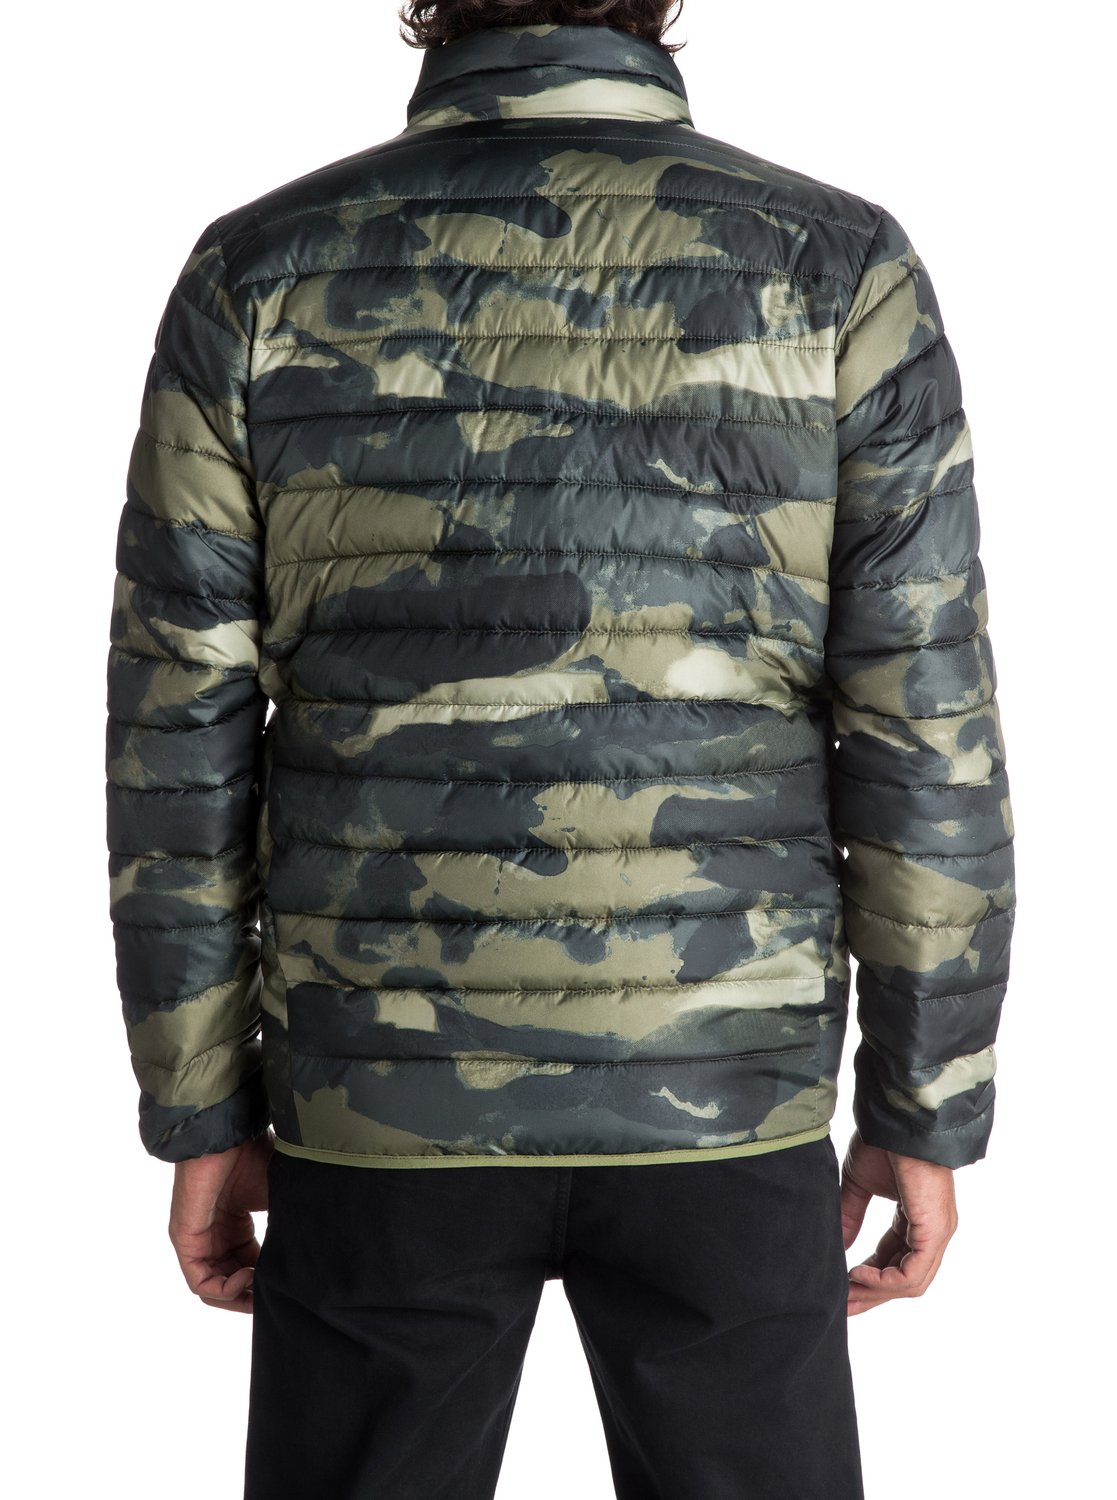 623f9a4291517 2 Scaly Insulator Jacket EQYJK03342 Quiksilver